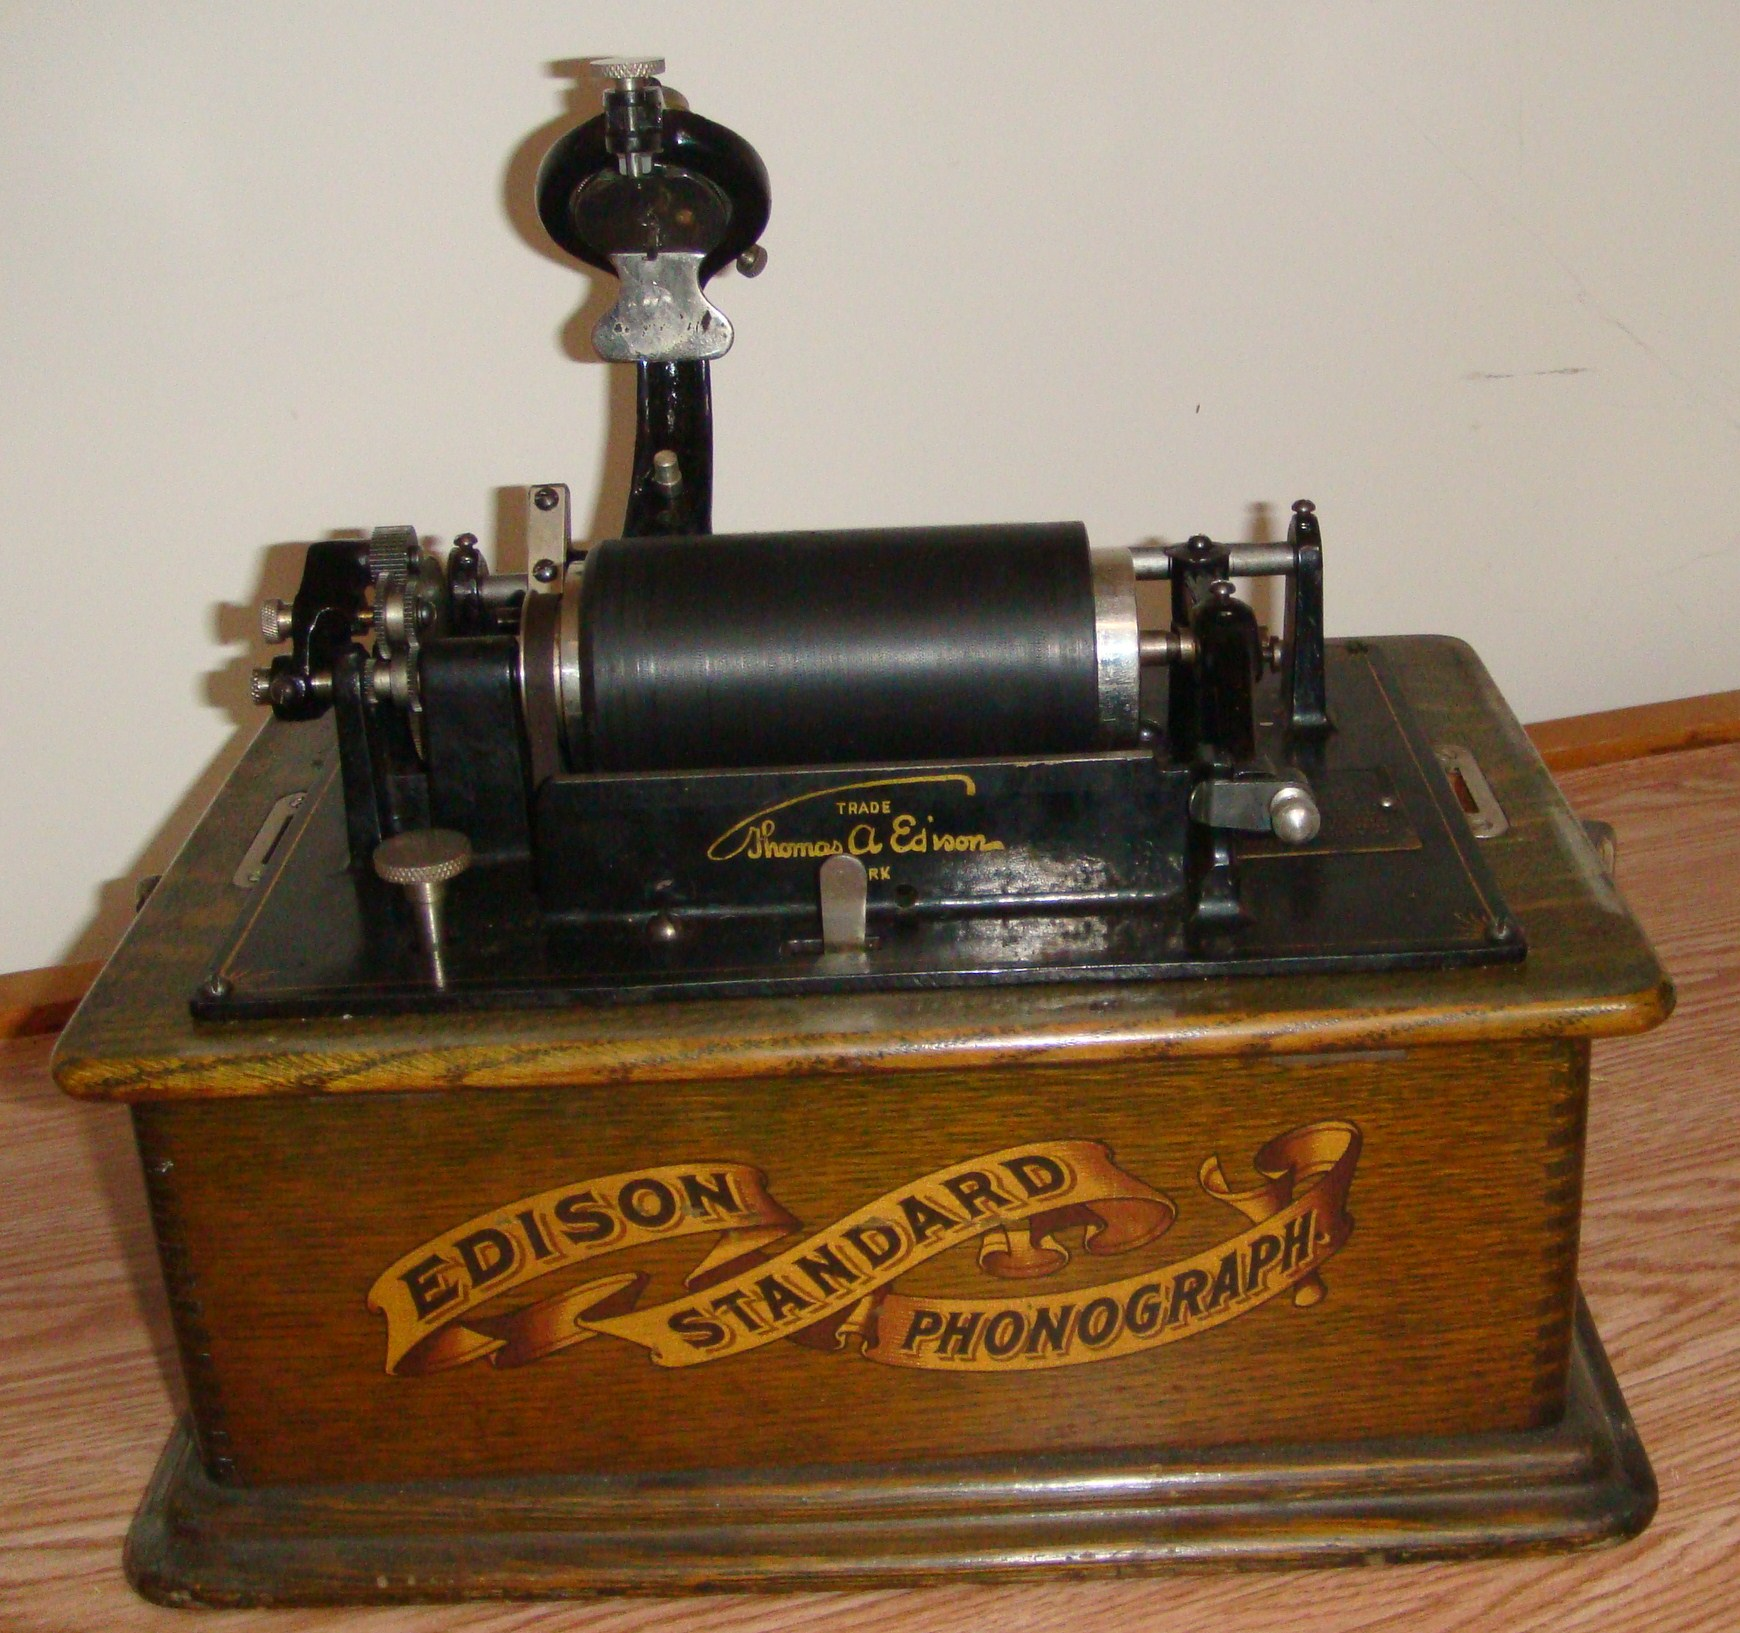 HiI Have A Thomas Edison Phonograph And Approximately 20